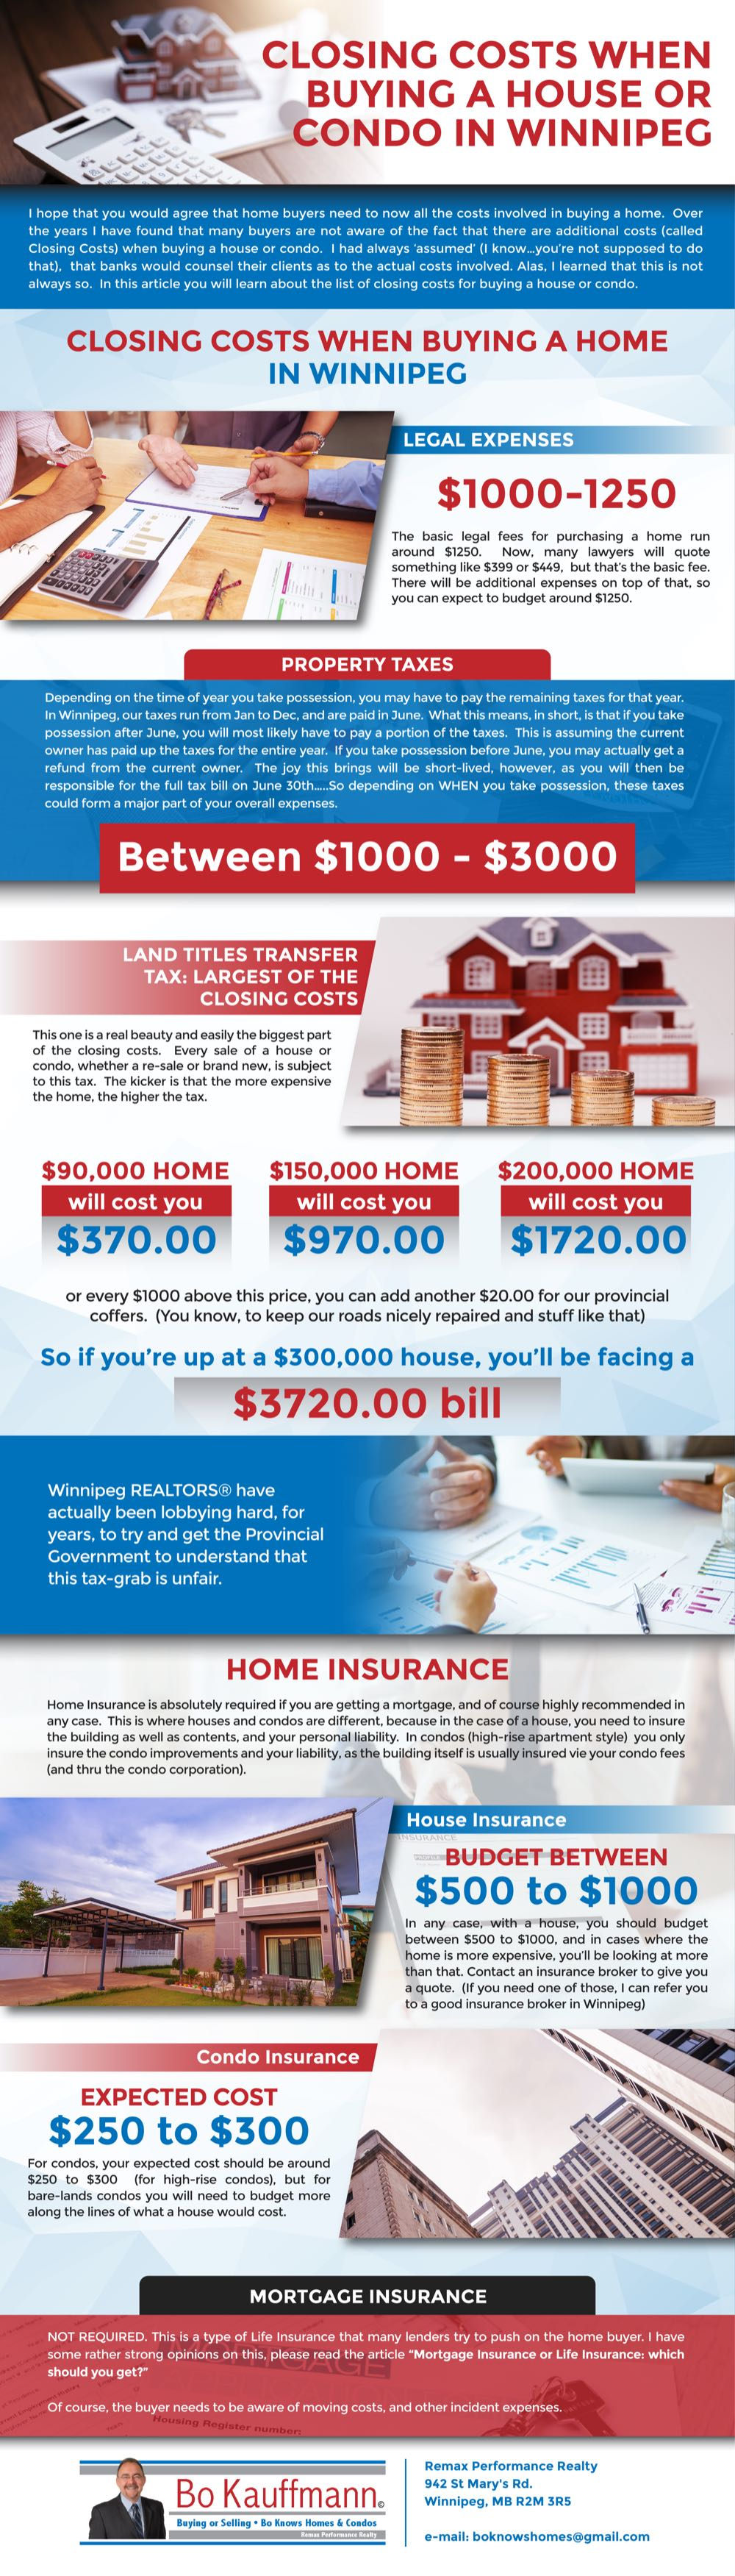 Closing Cost when buying a house in Winnipeg (infographic)